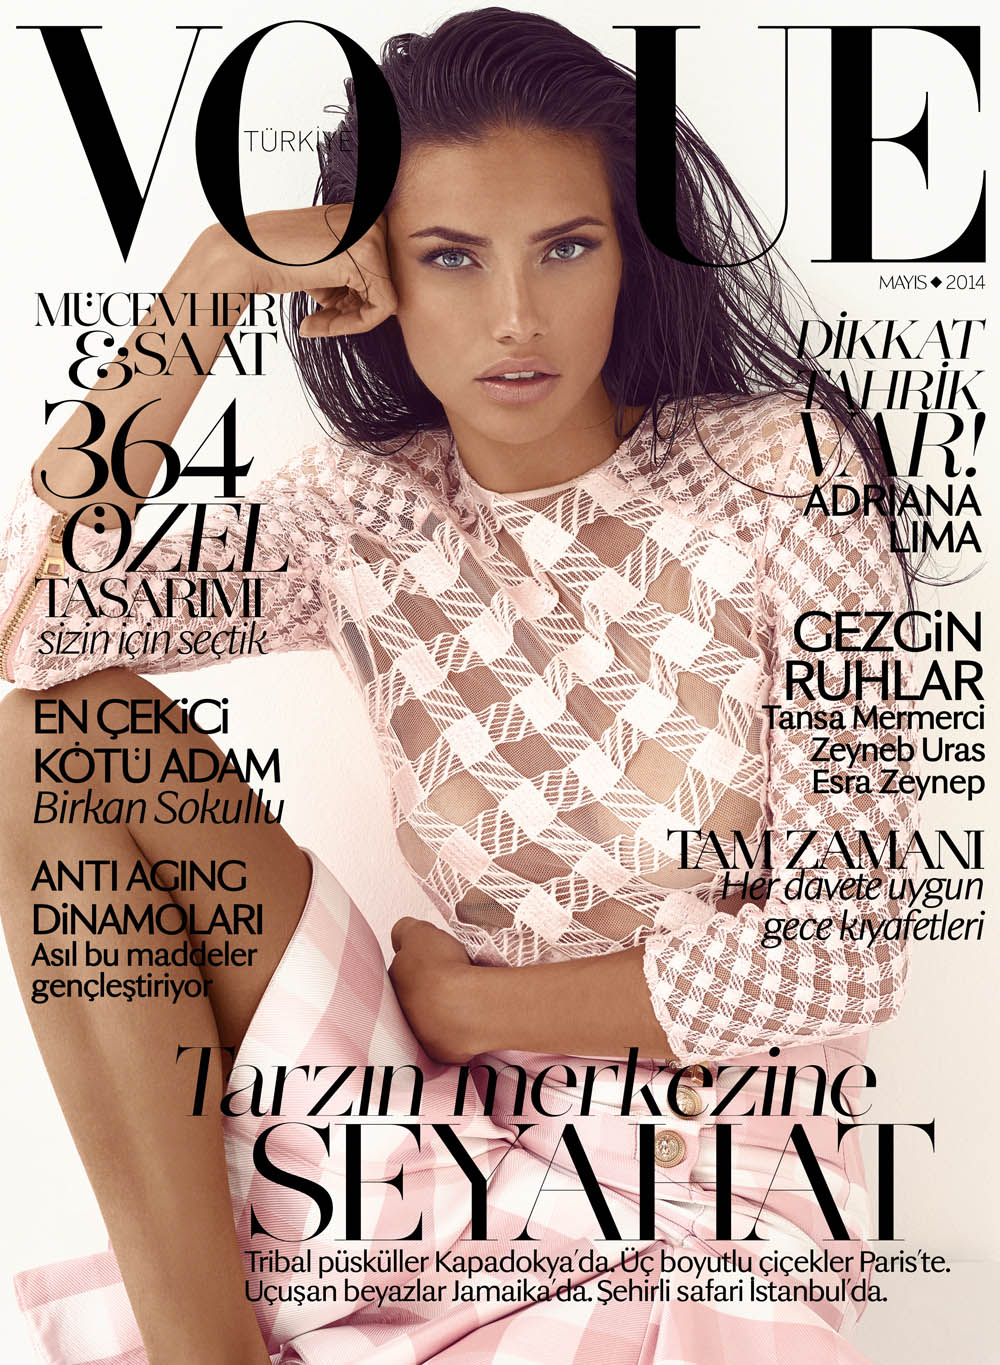 ADRIANA LIMA FOR VOGUE TURKEY